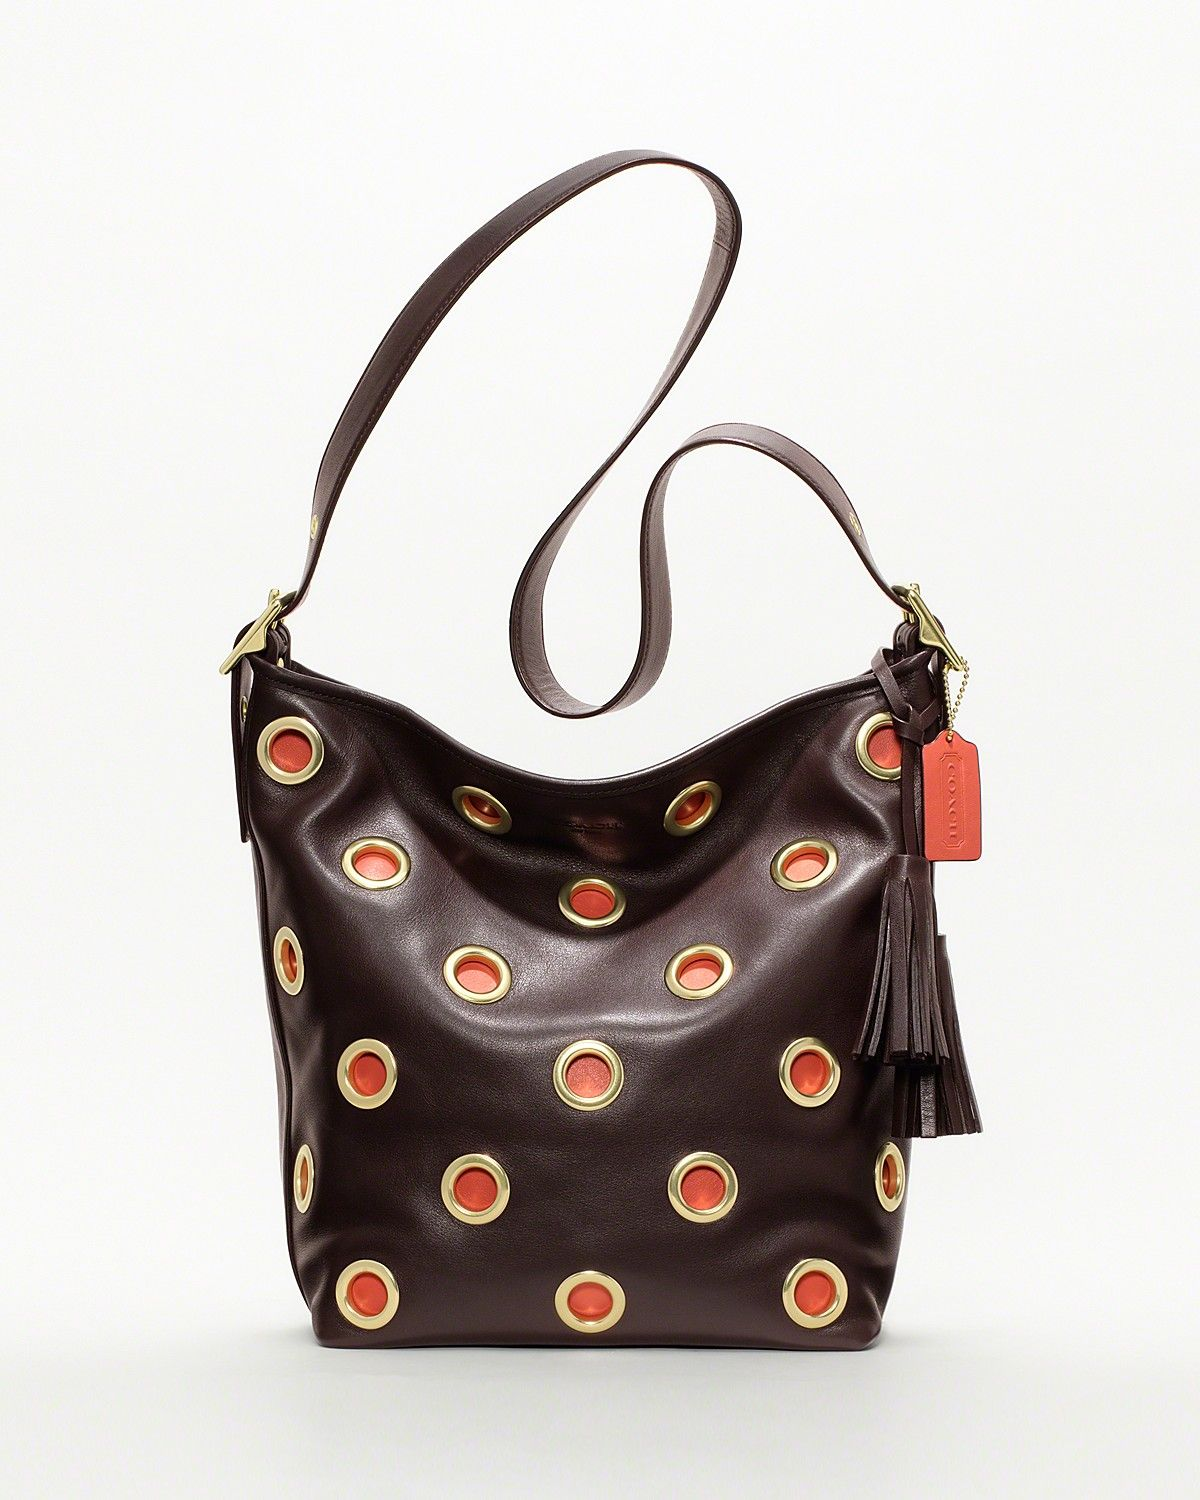 COACH Legacy Grommet Duffle - New Arrivals - Boutiques - Handbags - Bloomingdale's